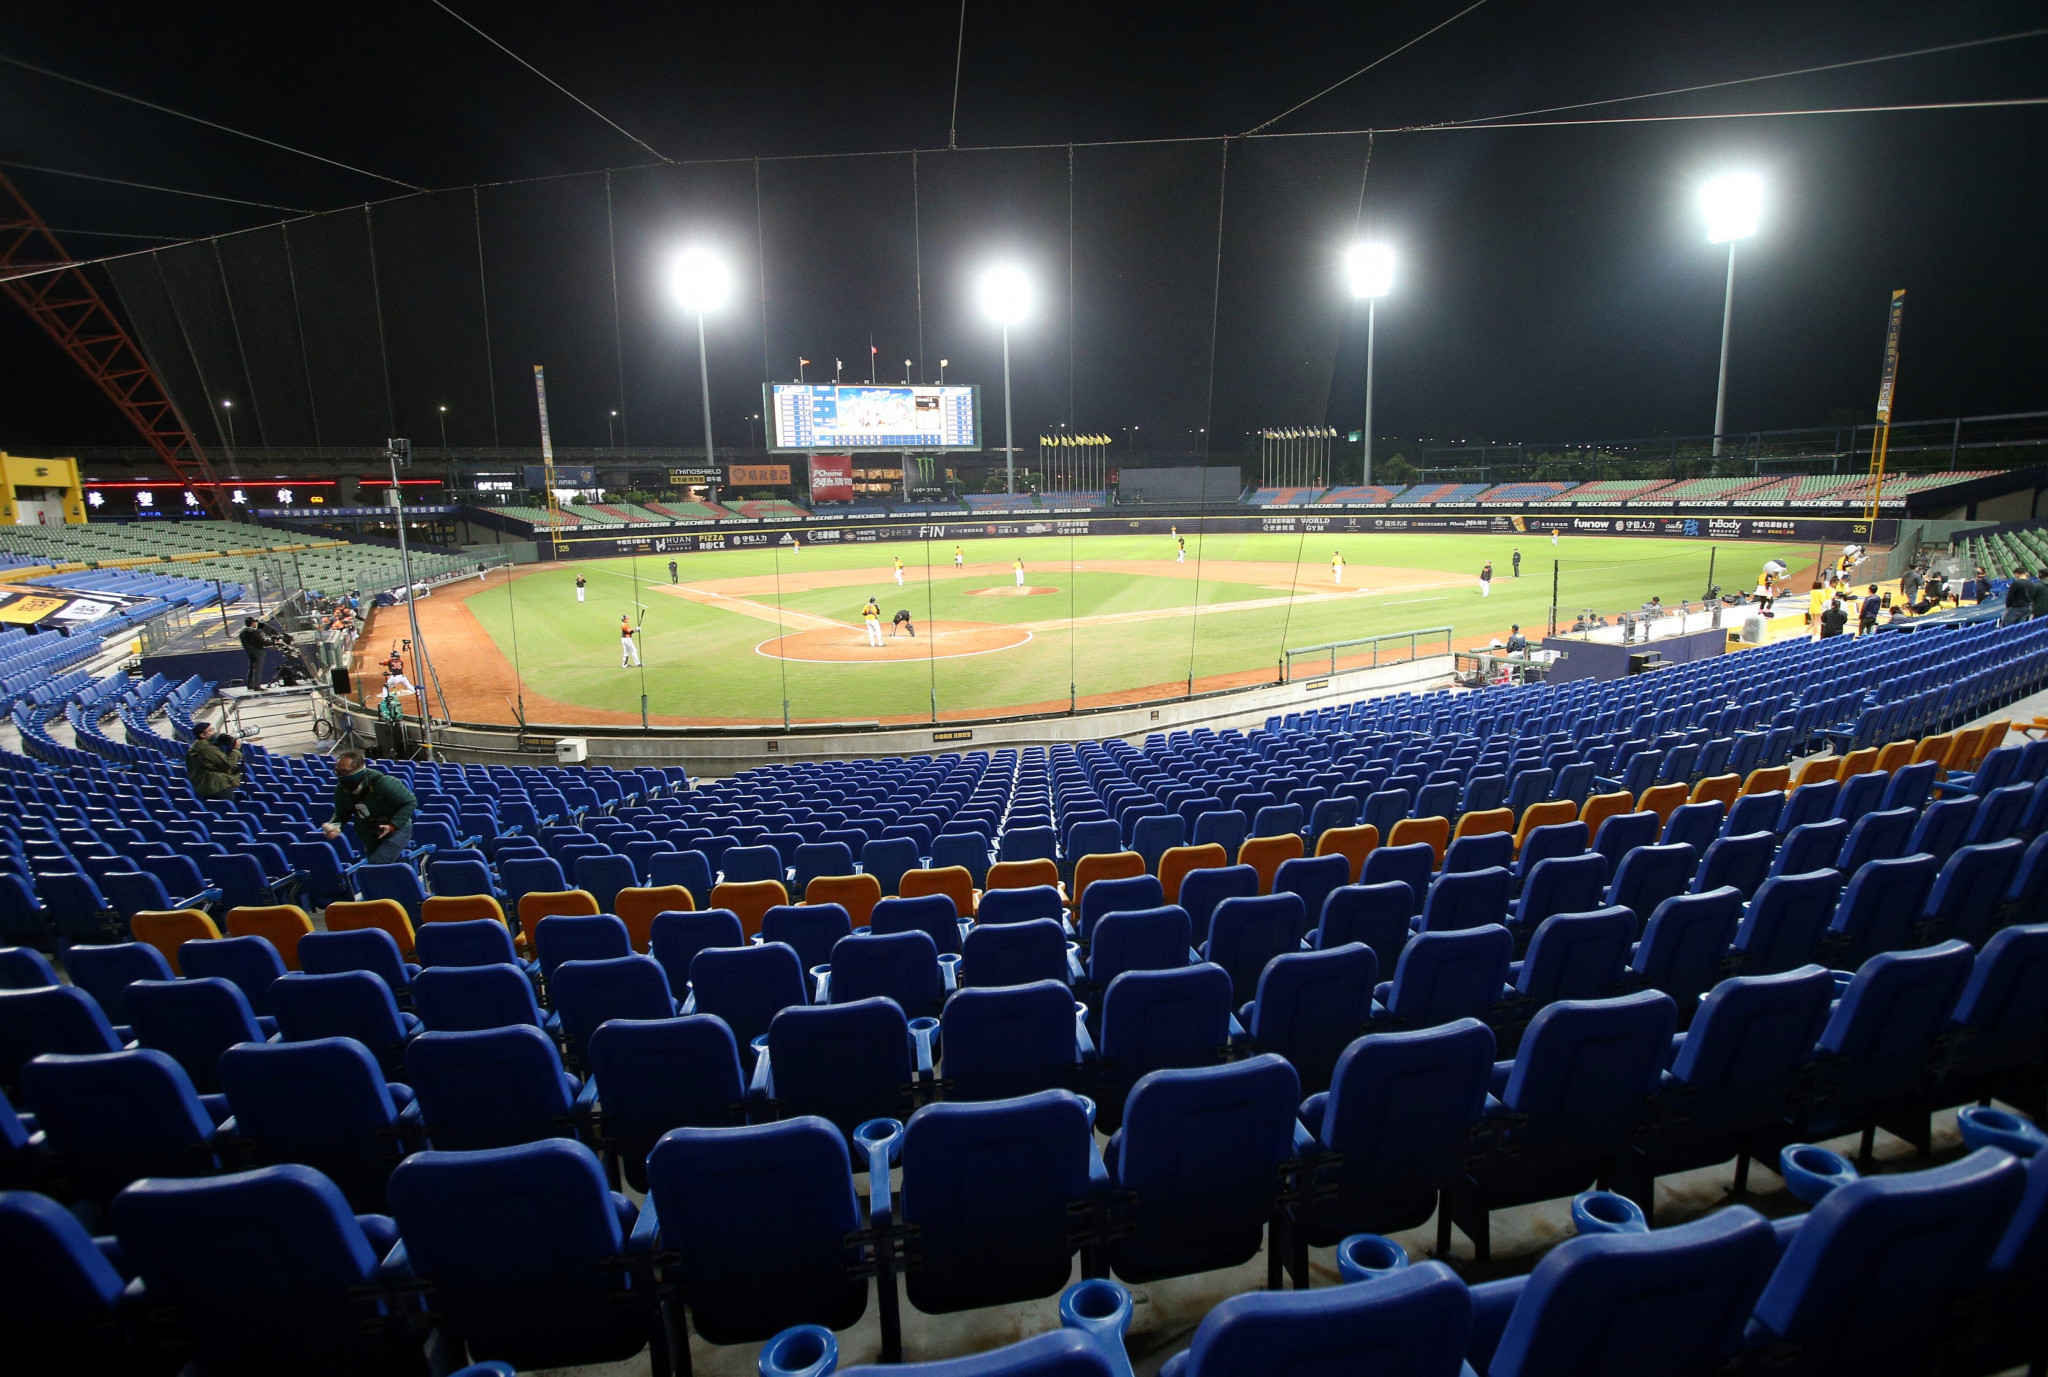 WBSC Under-12s Mixed Softball World Cup in Taichung postponed until summer of 2022